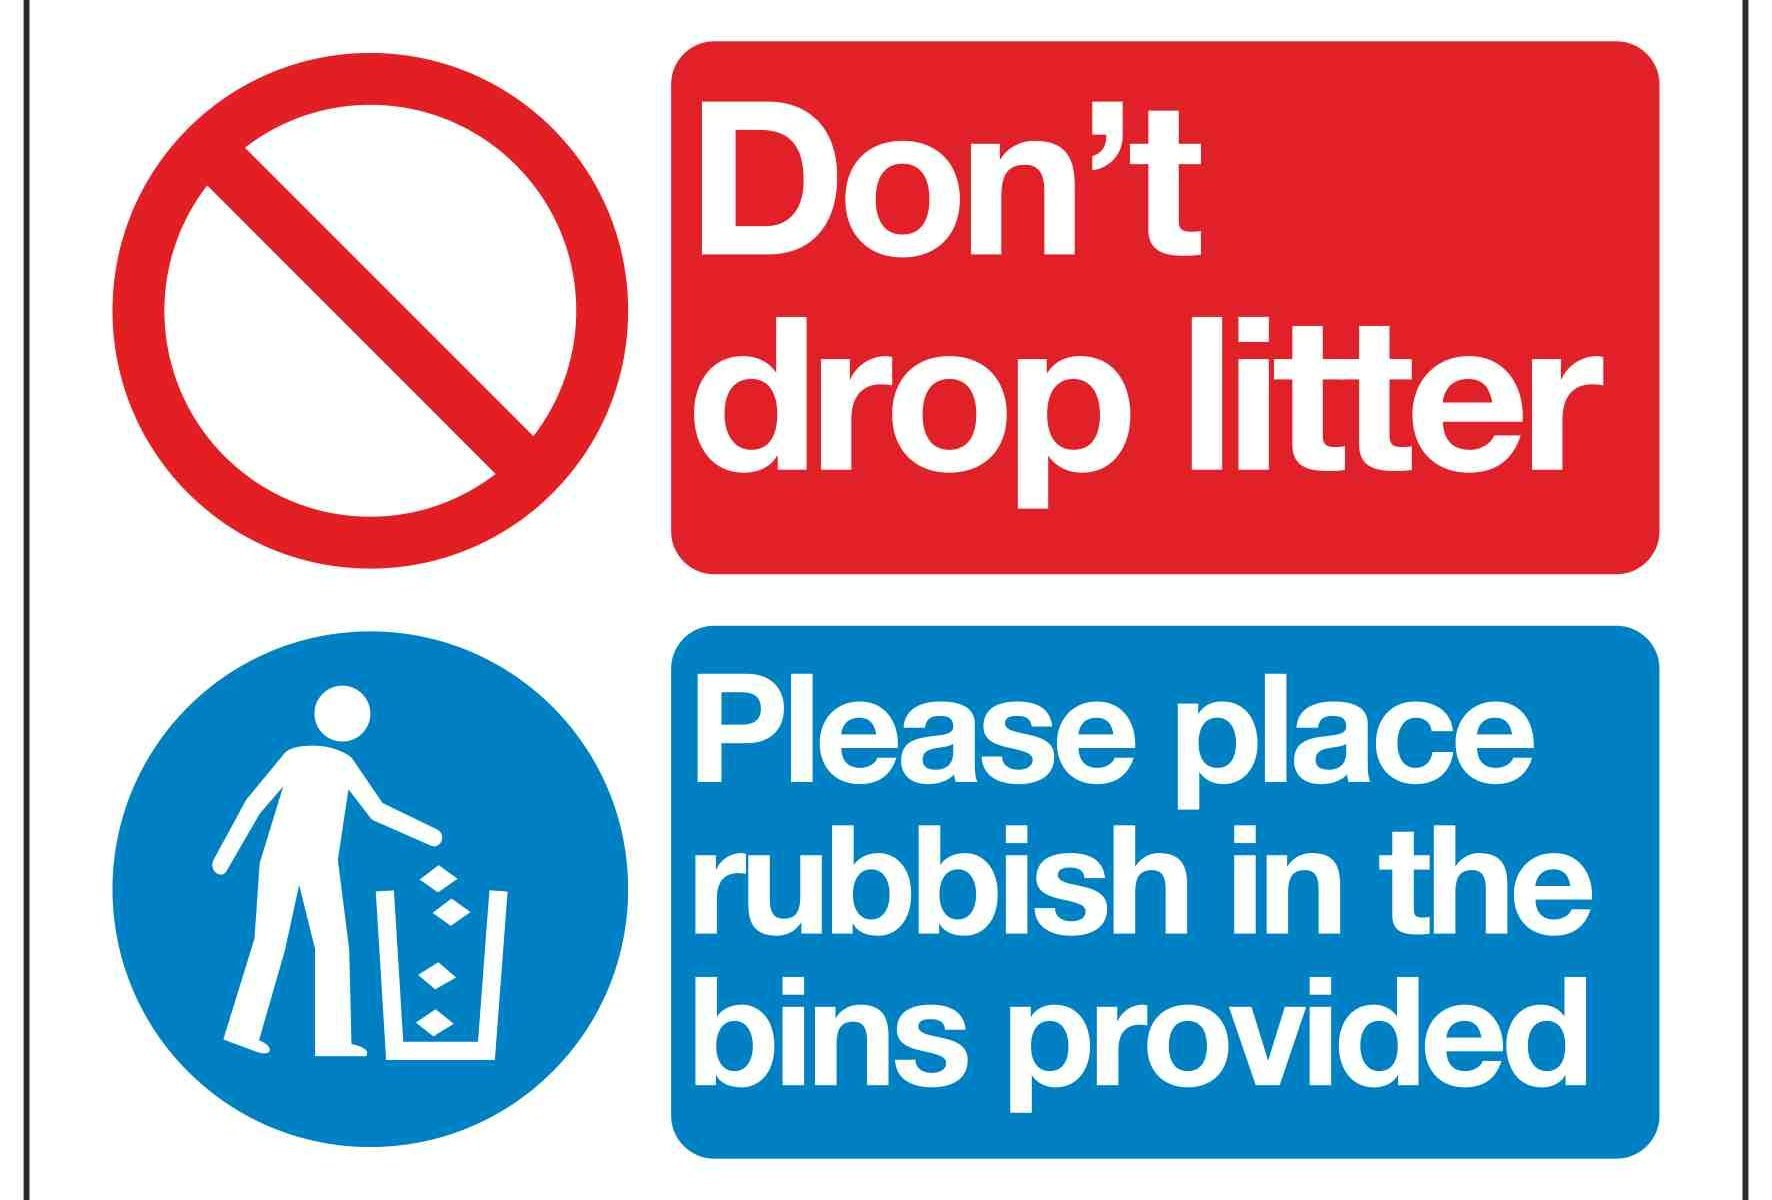 Don't drop litter Please place rubbish in the bins provided